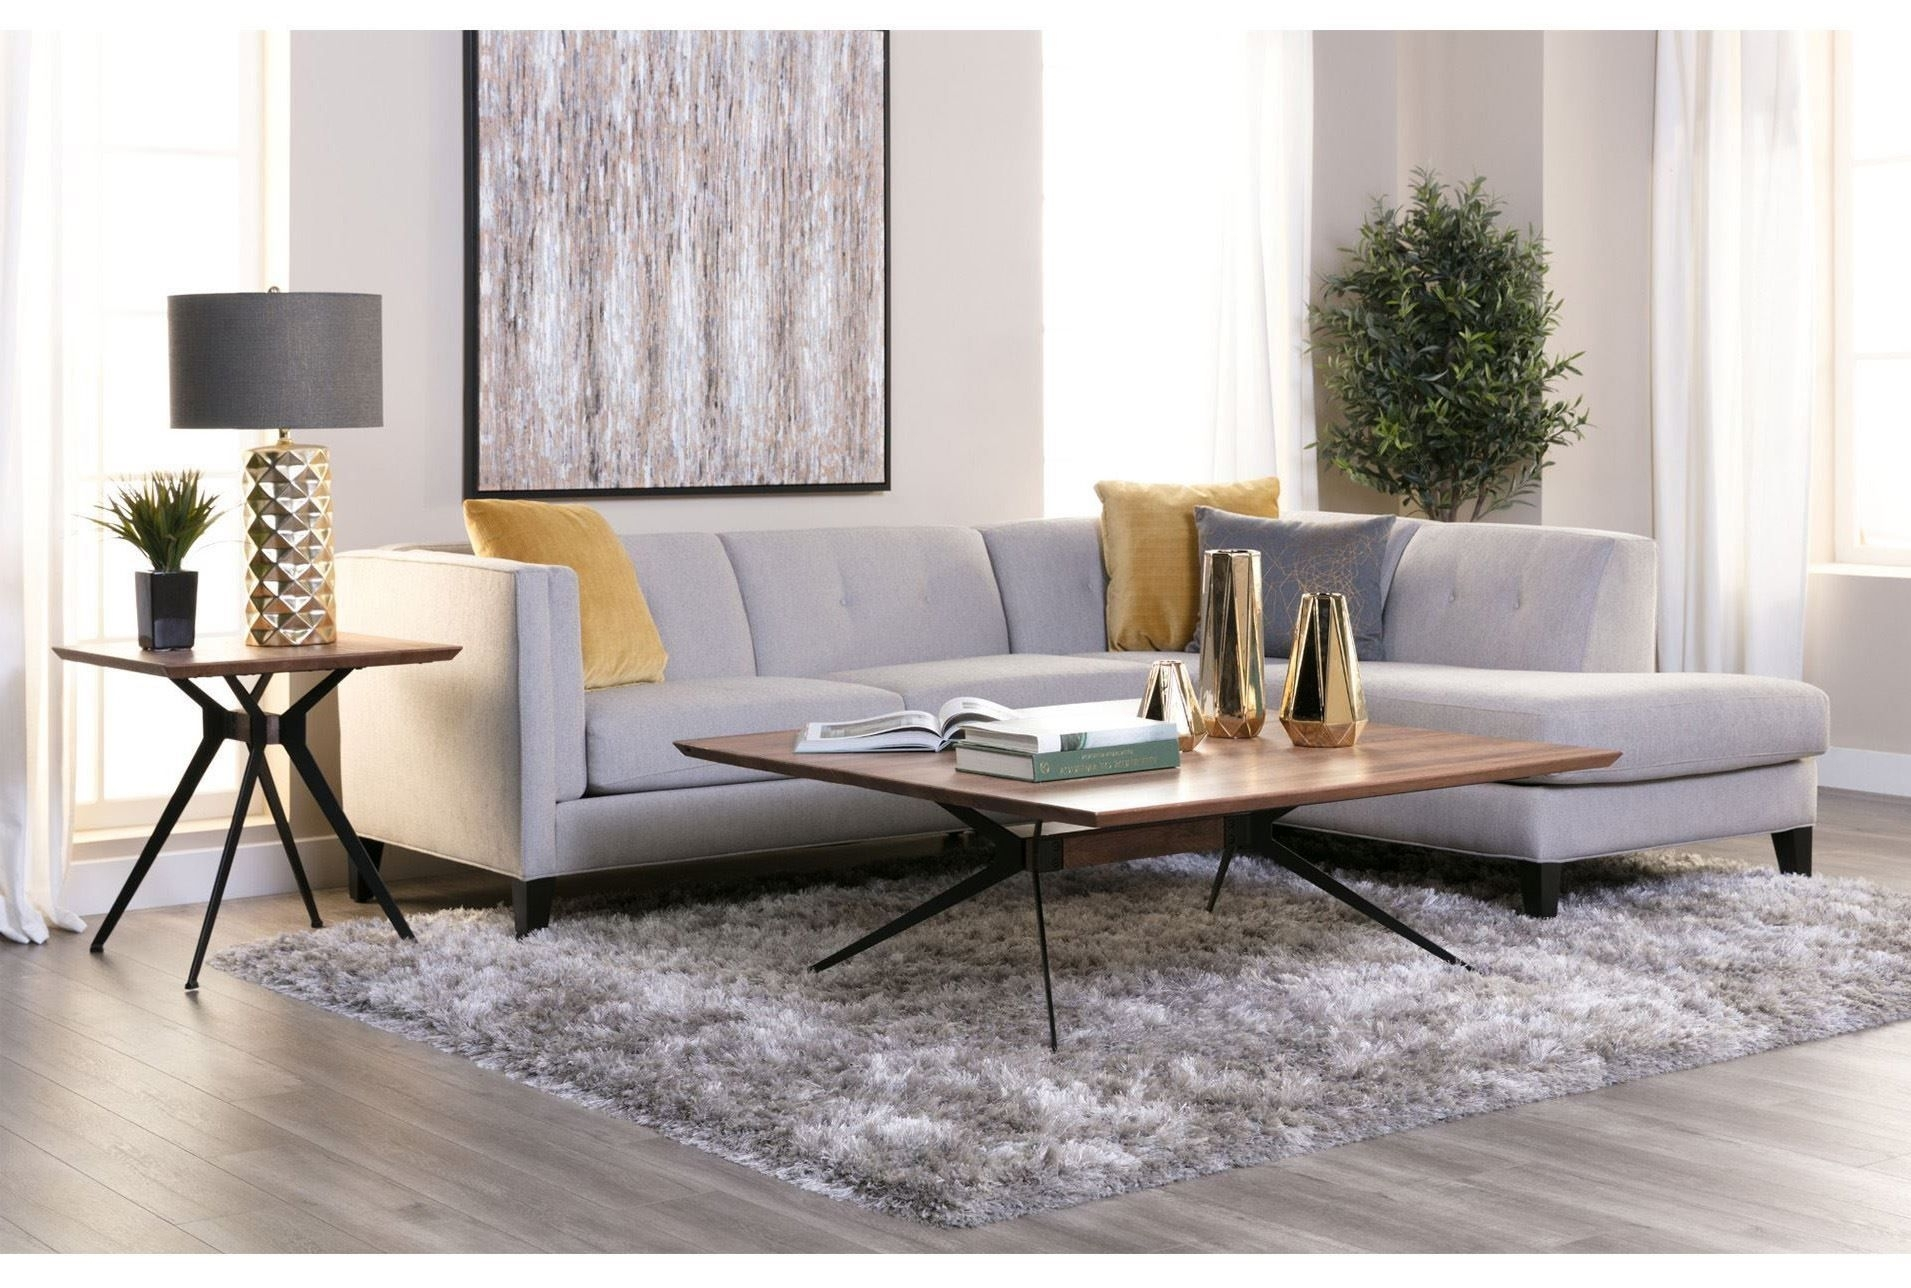 Avery 2 Piece Sectional W/raf Armless Chaise, Grey, Sofas | Mid Inside Aquarius Dark Grey 2 Piece Sectionals With Raf Chaise (View 13 of 25)